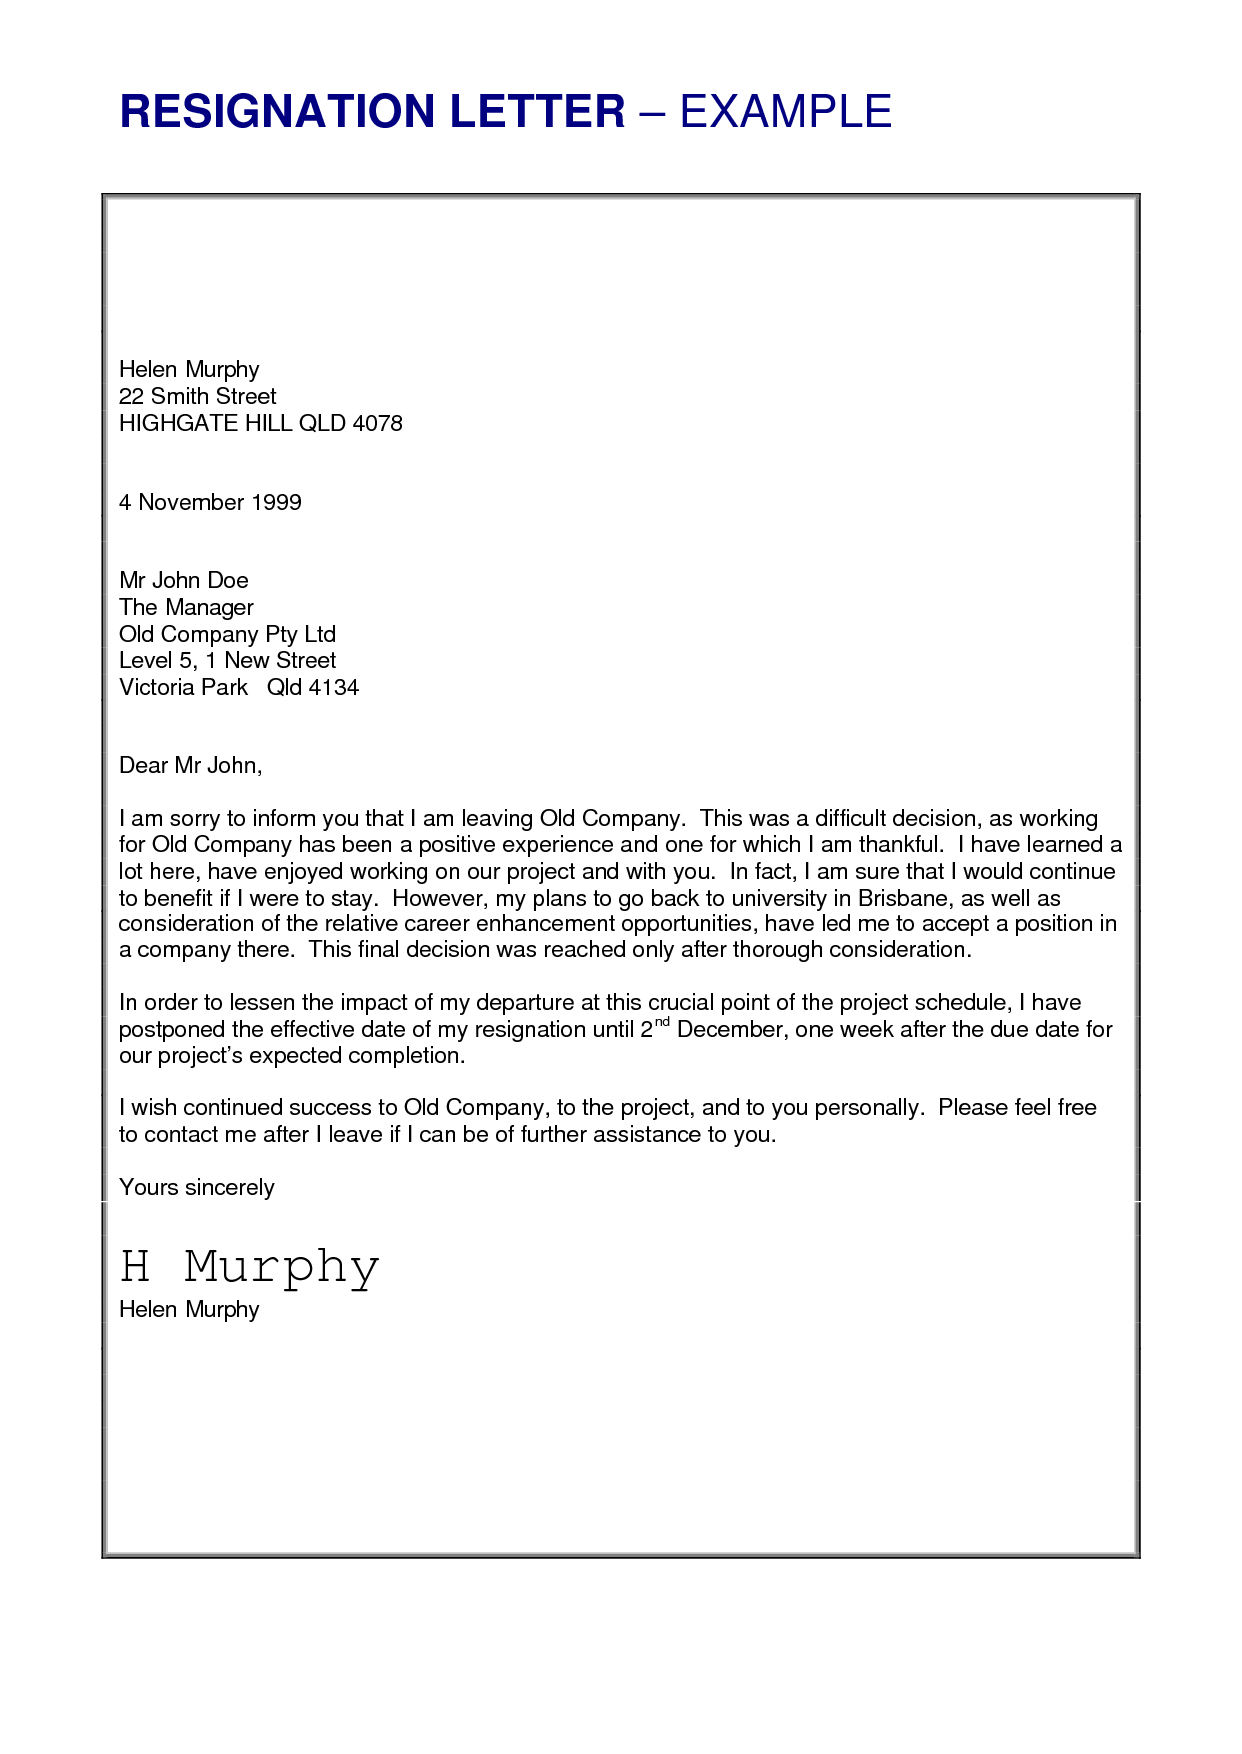 Microsoft Office Resignation Letter Template - Job Resignation Letter Sample Loganun Blog Job